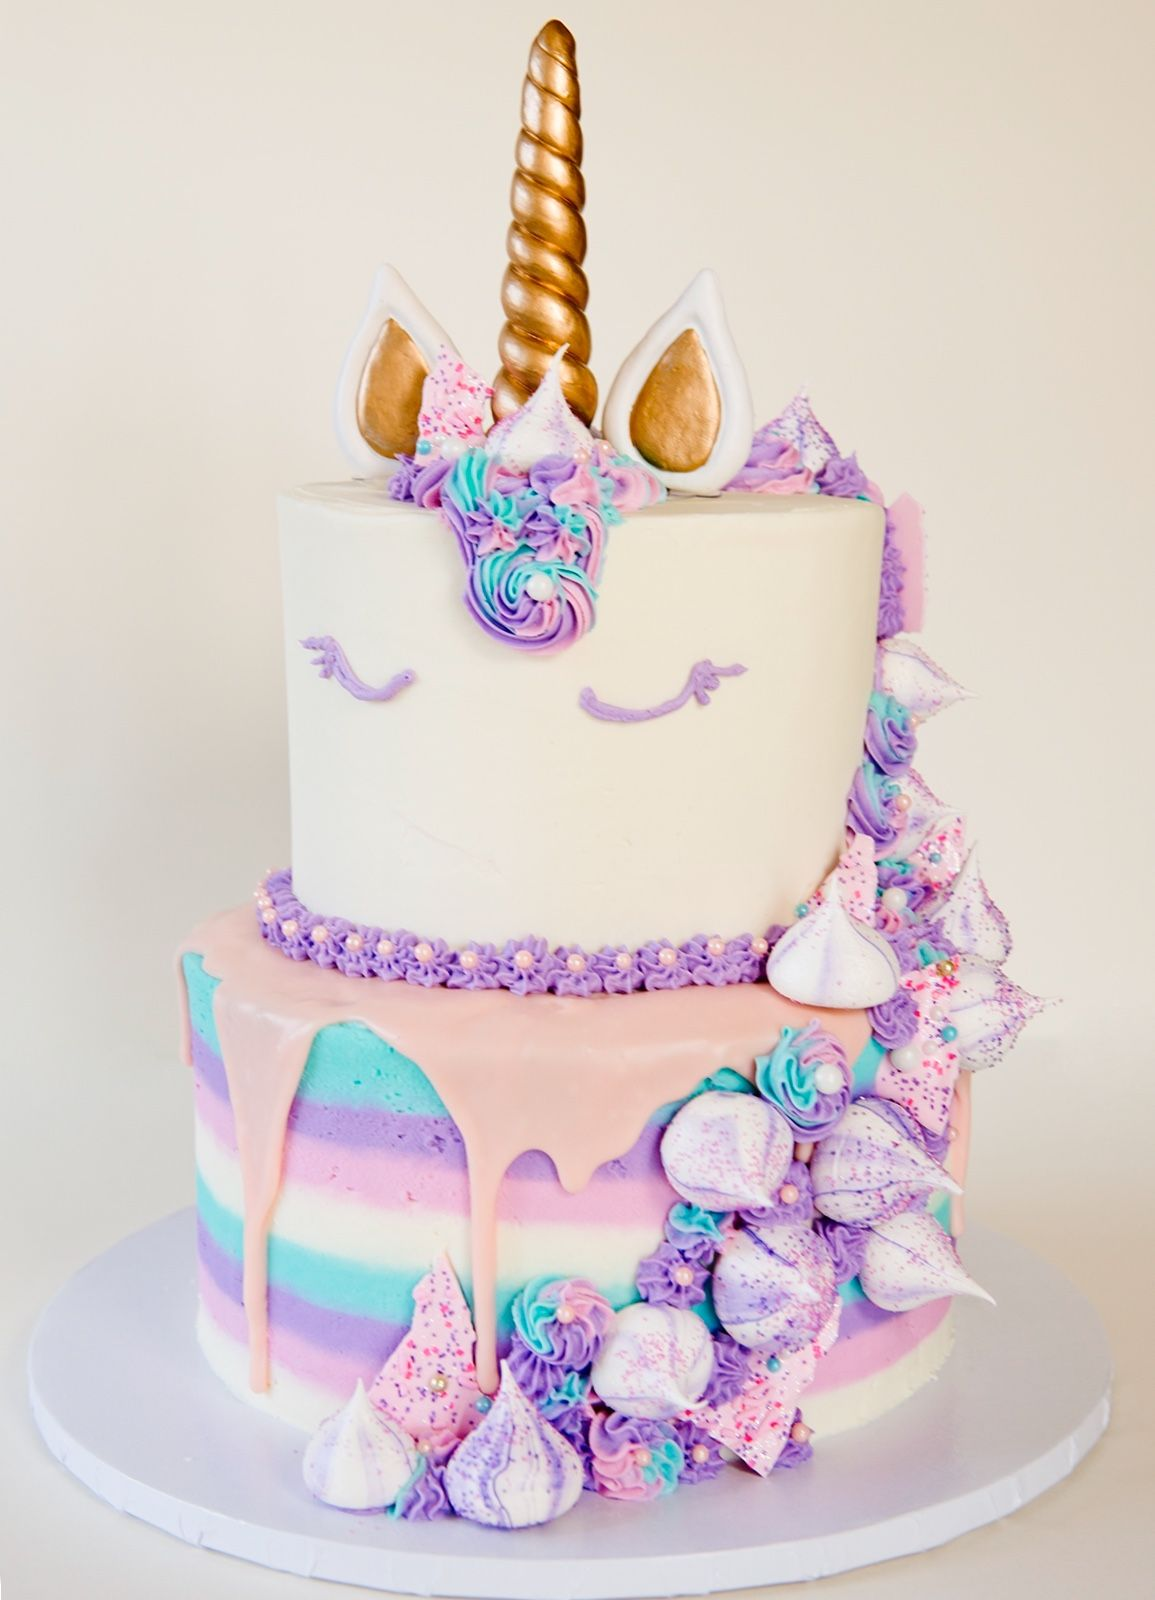 Jackiecellabakes Two Tier Unicorn Cake With Buttercream Meringues